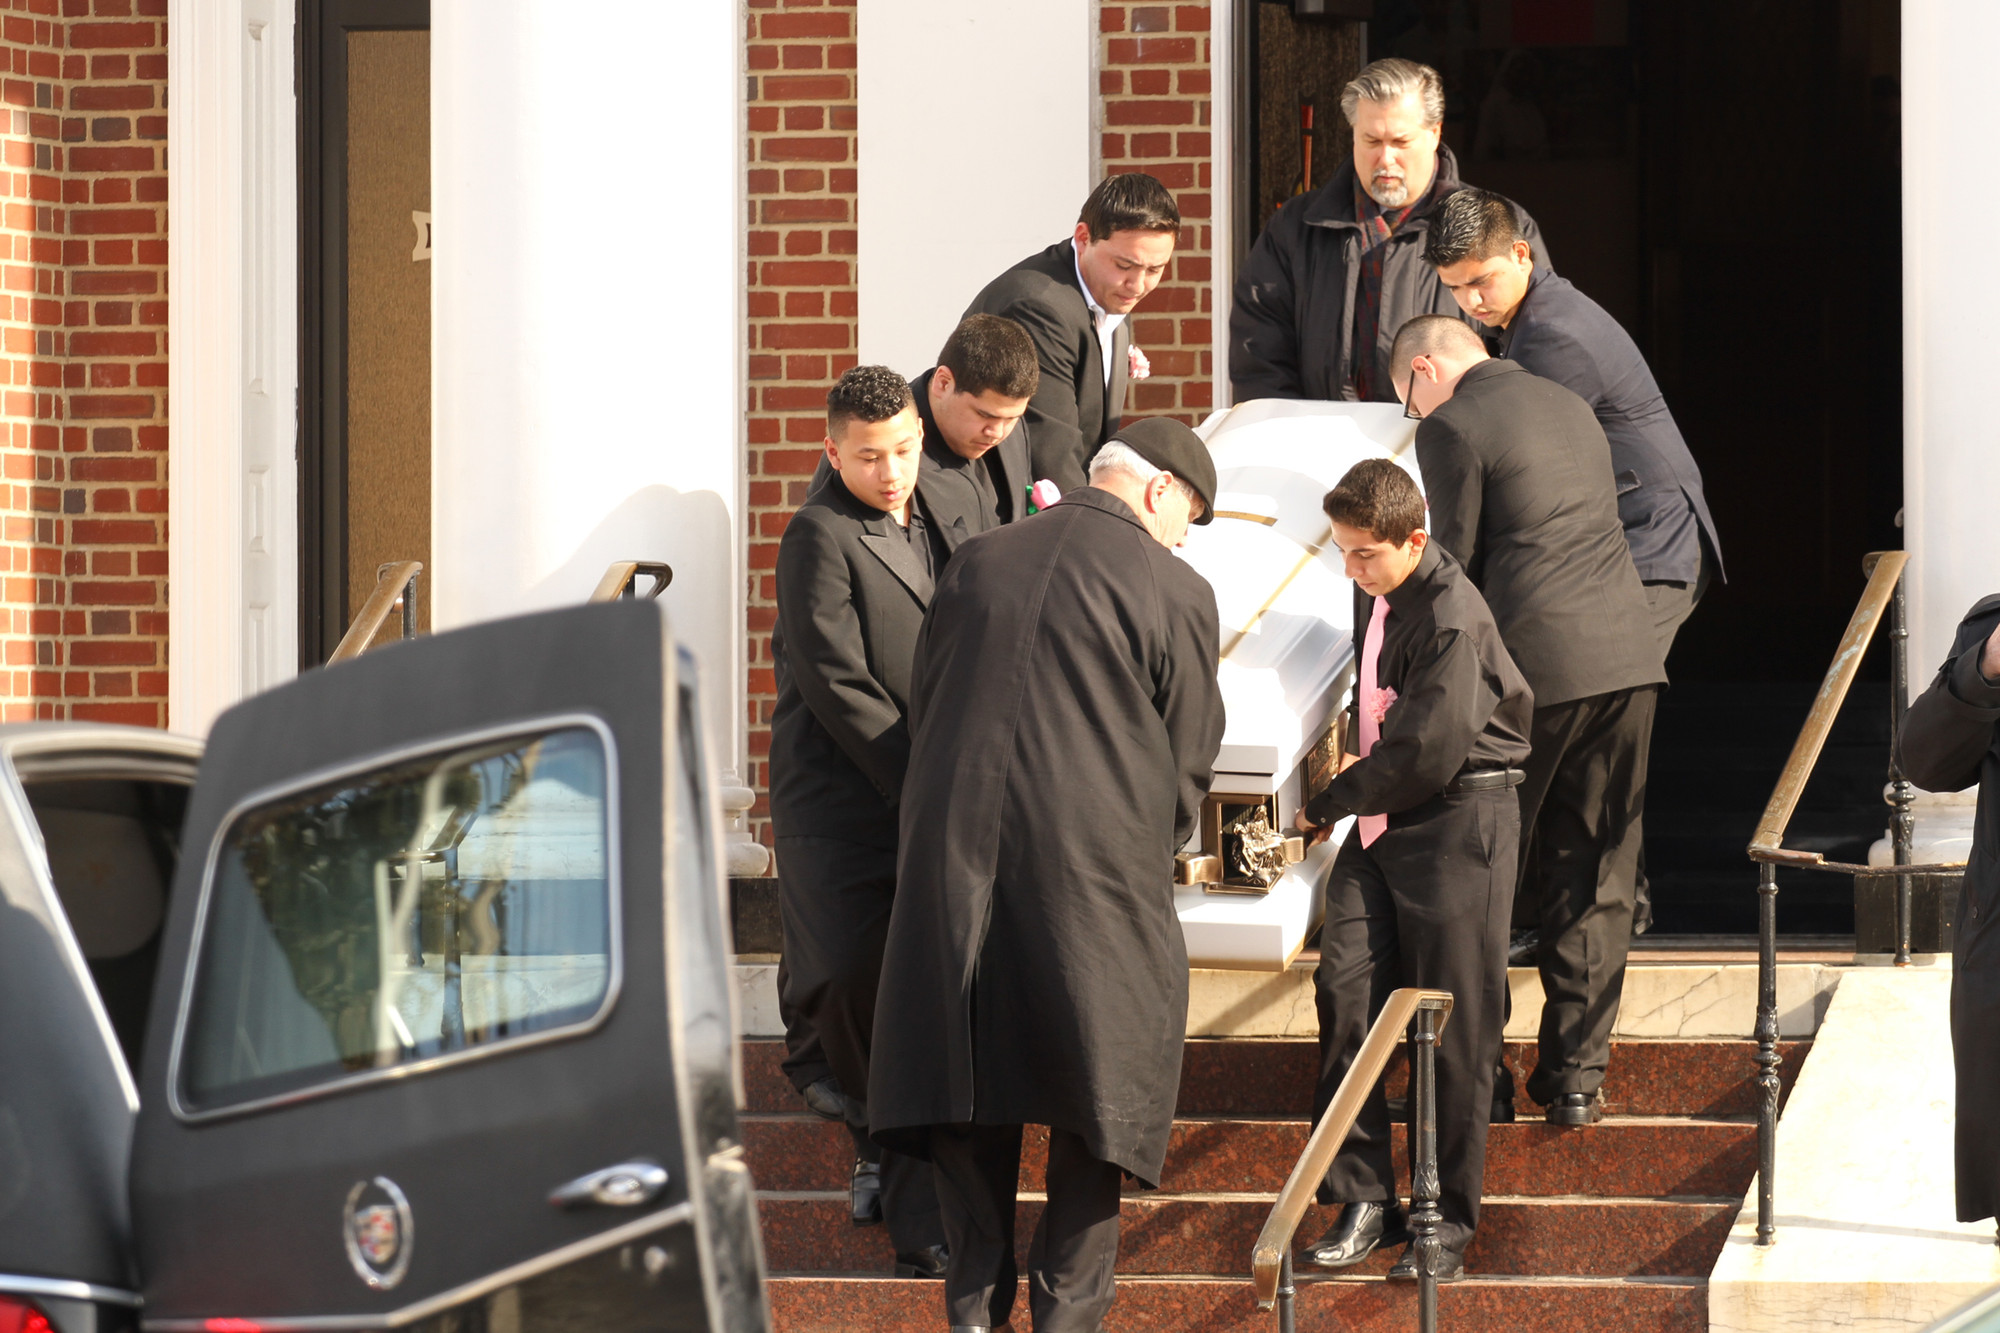 A funeral Mass was held for Cindy Garcia on Feb. 6 at Our Lady of Loretto Church in Hempstead, with a burial at Greenfield Cemetery in Uniondale.